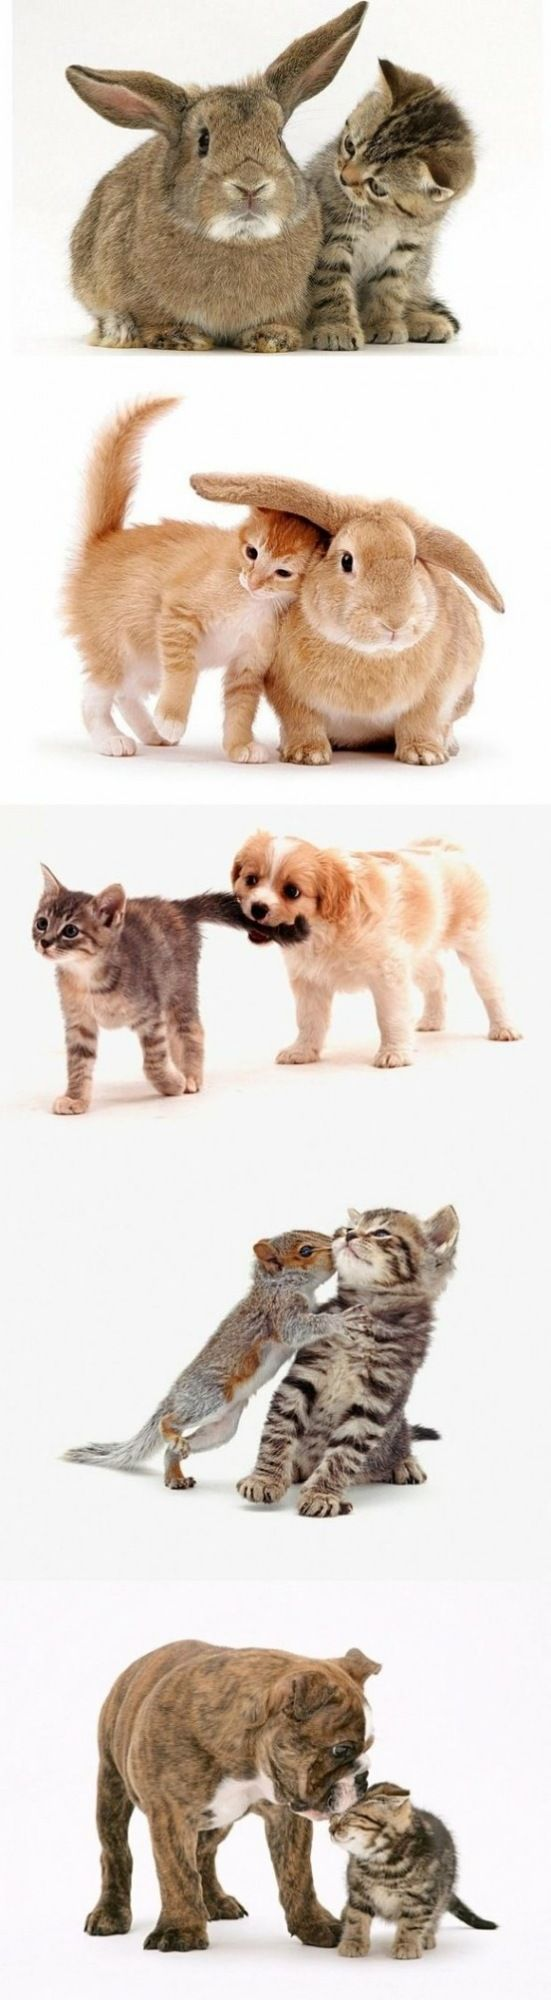 Kittens and Cats - Cute Photos